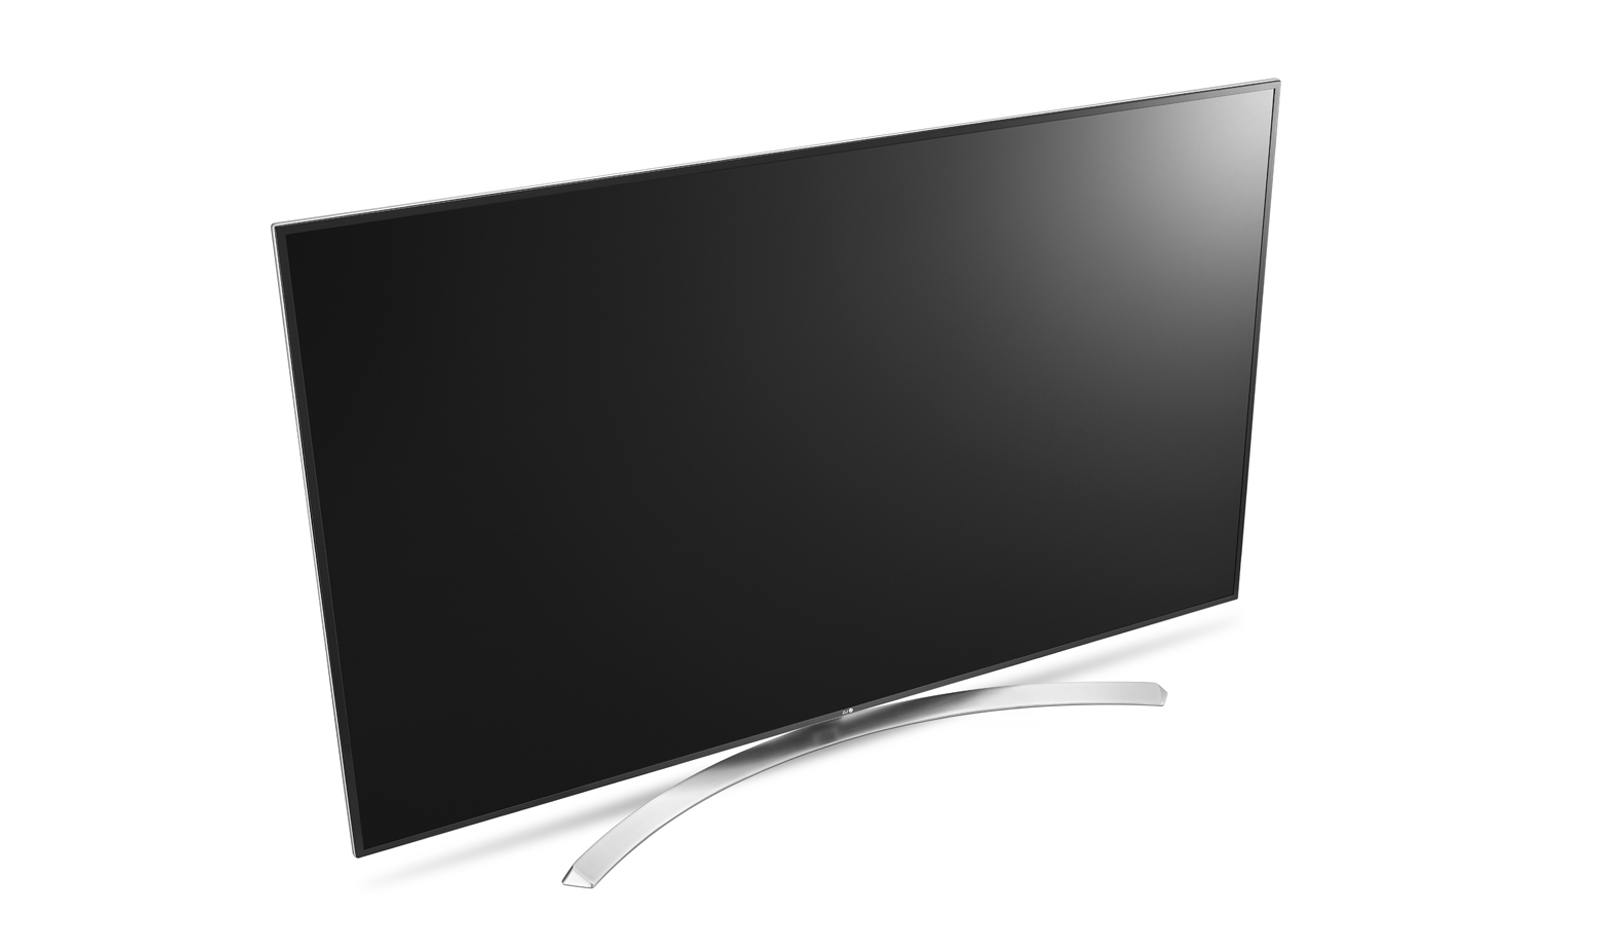 75 Inch Super Uhd Tv | Lg 75uh855v | Lg Uk Pertaining To Dixon White 65 Inch Tv Stands (View 20 of 20)